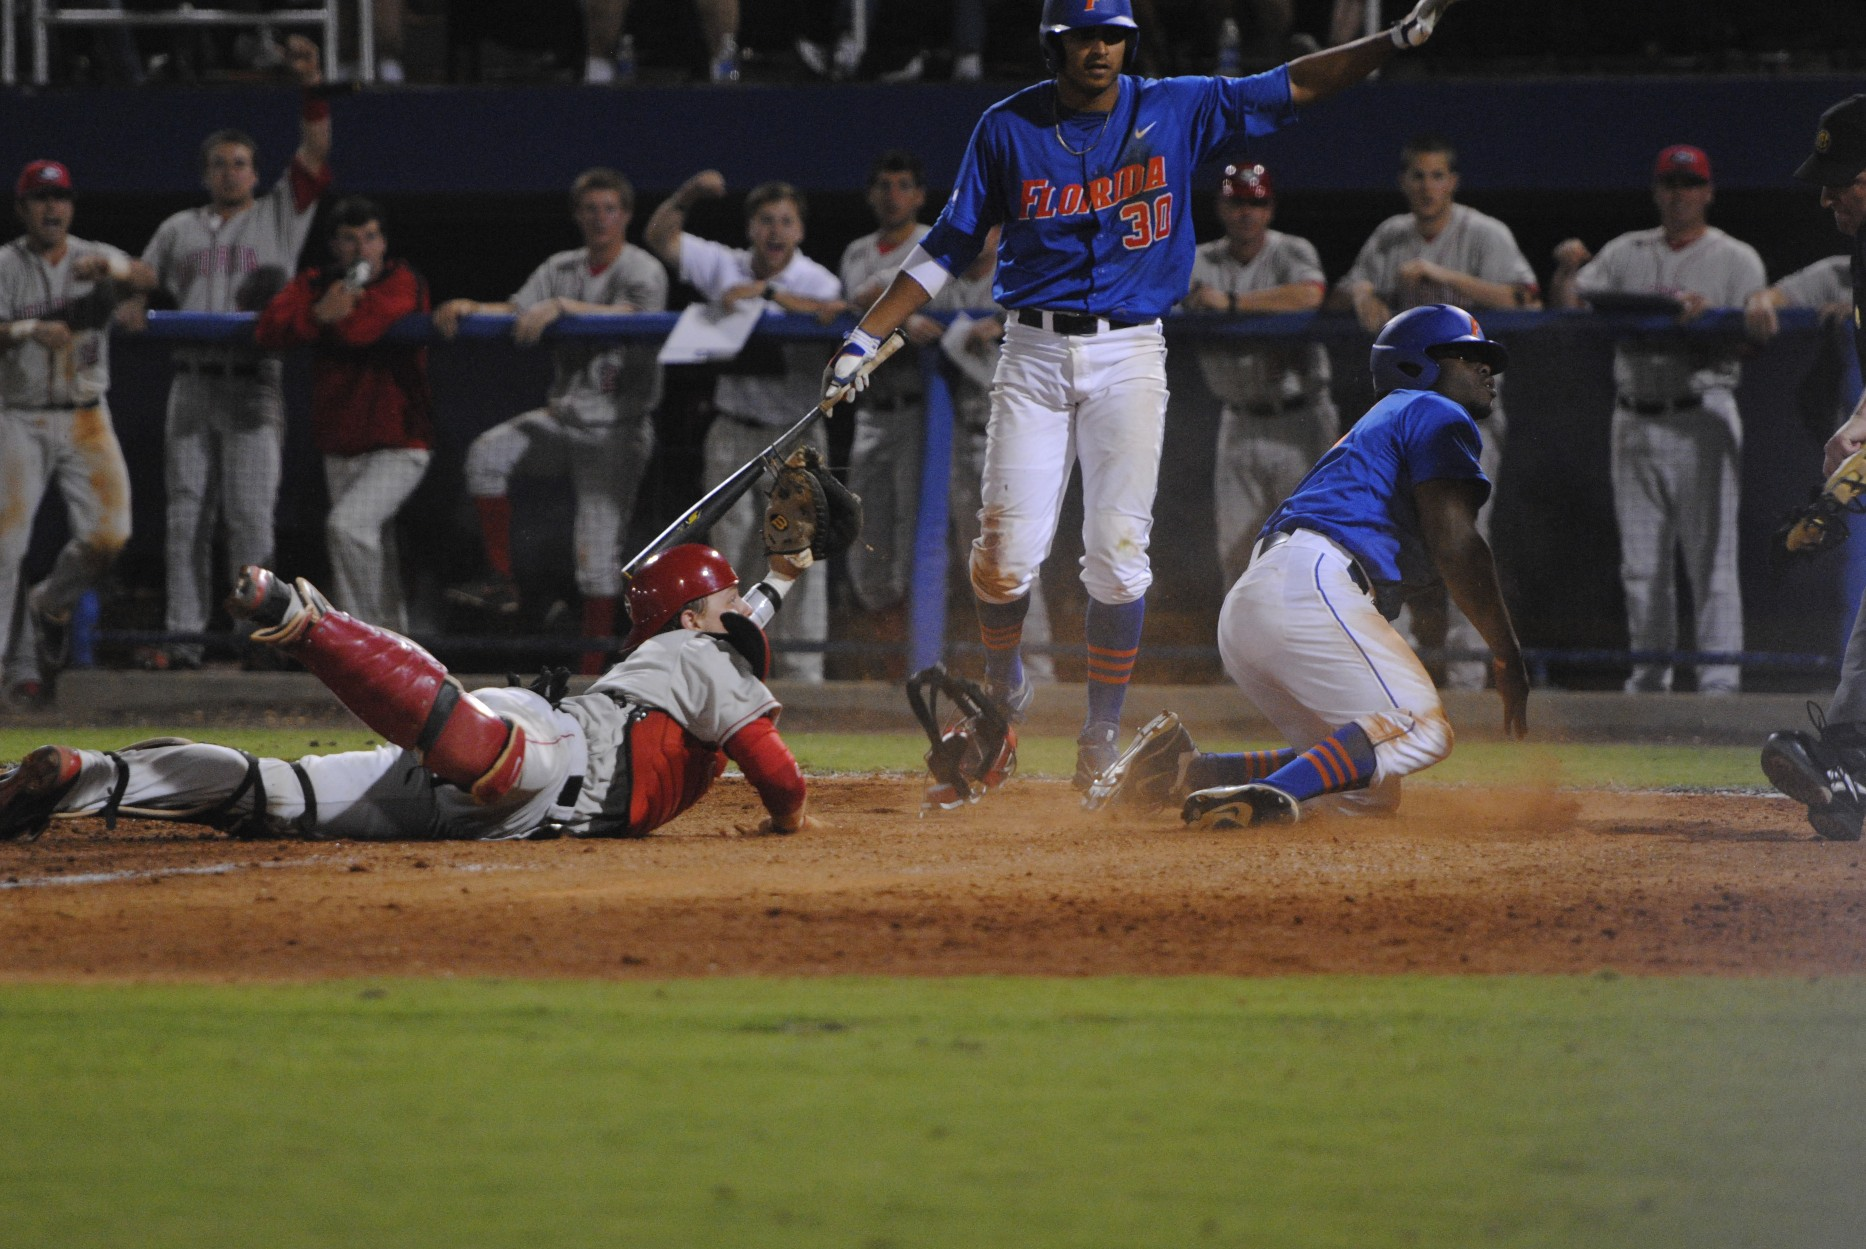 Freshman Josh Tobias tries to score for the Gators but is tagged out at home.